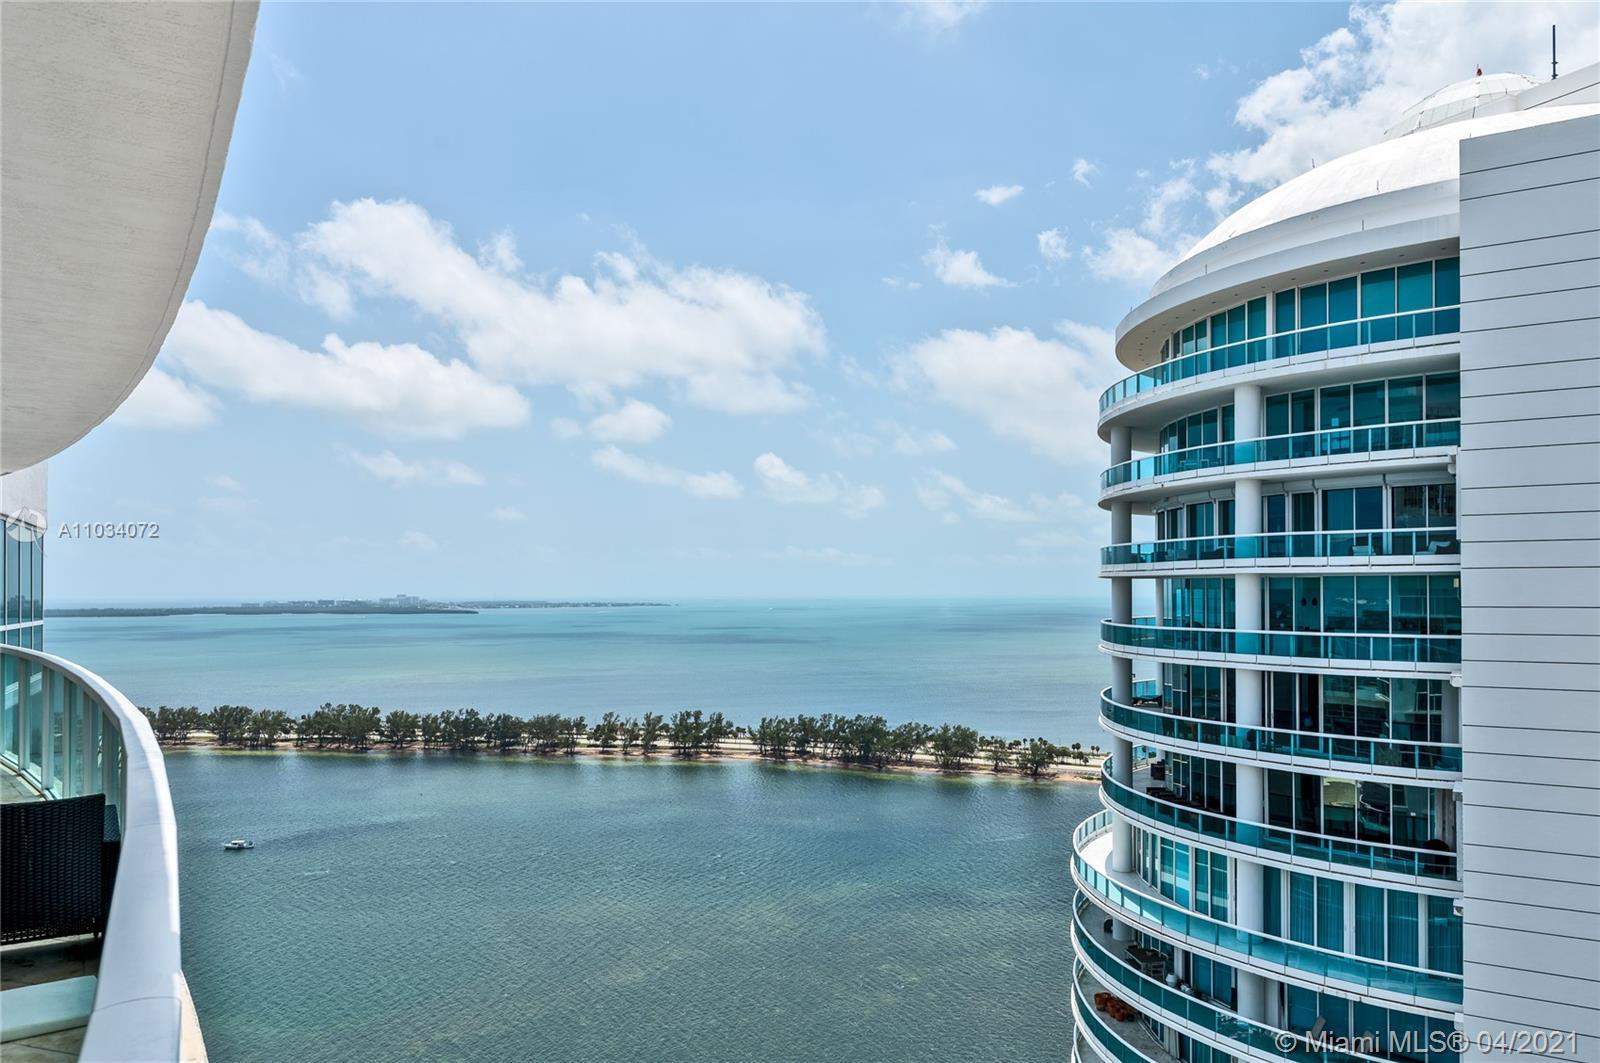 AMAZING UNIT ON THE 35th. FLOOR LOCATED IN BRICKELL AVE. LARGE BALCONY WITH OCEAN AND CITY VIEWS. GR